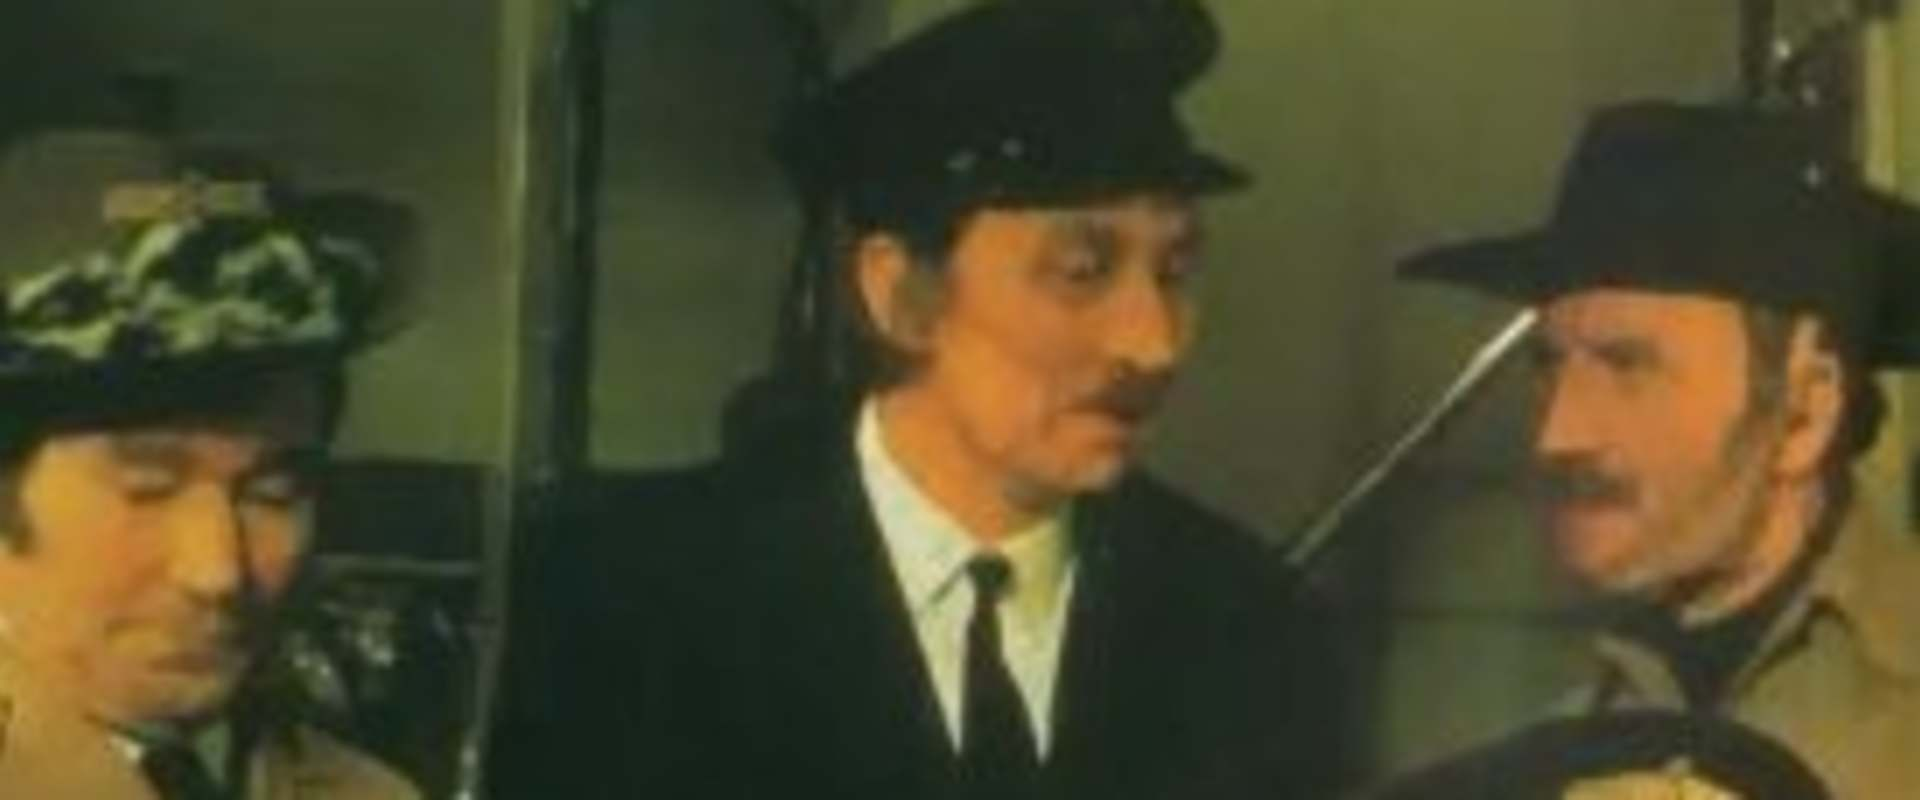 Mutiny on the Buses background 1